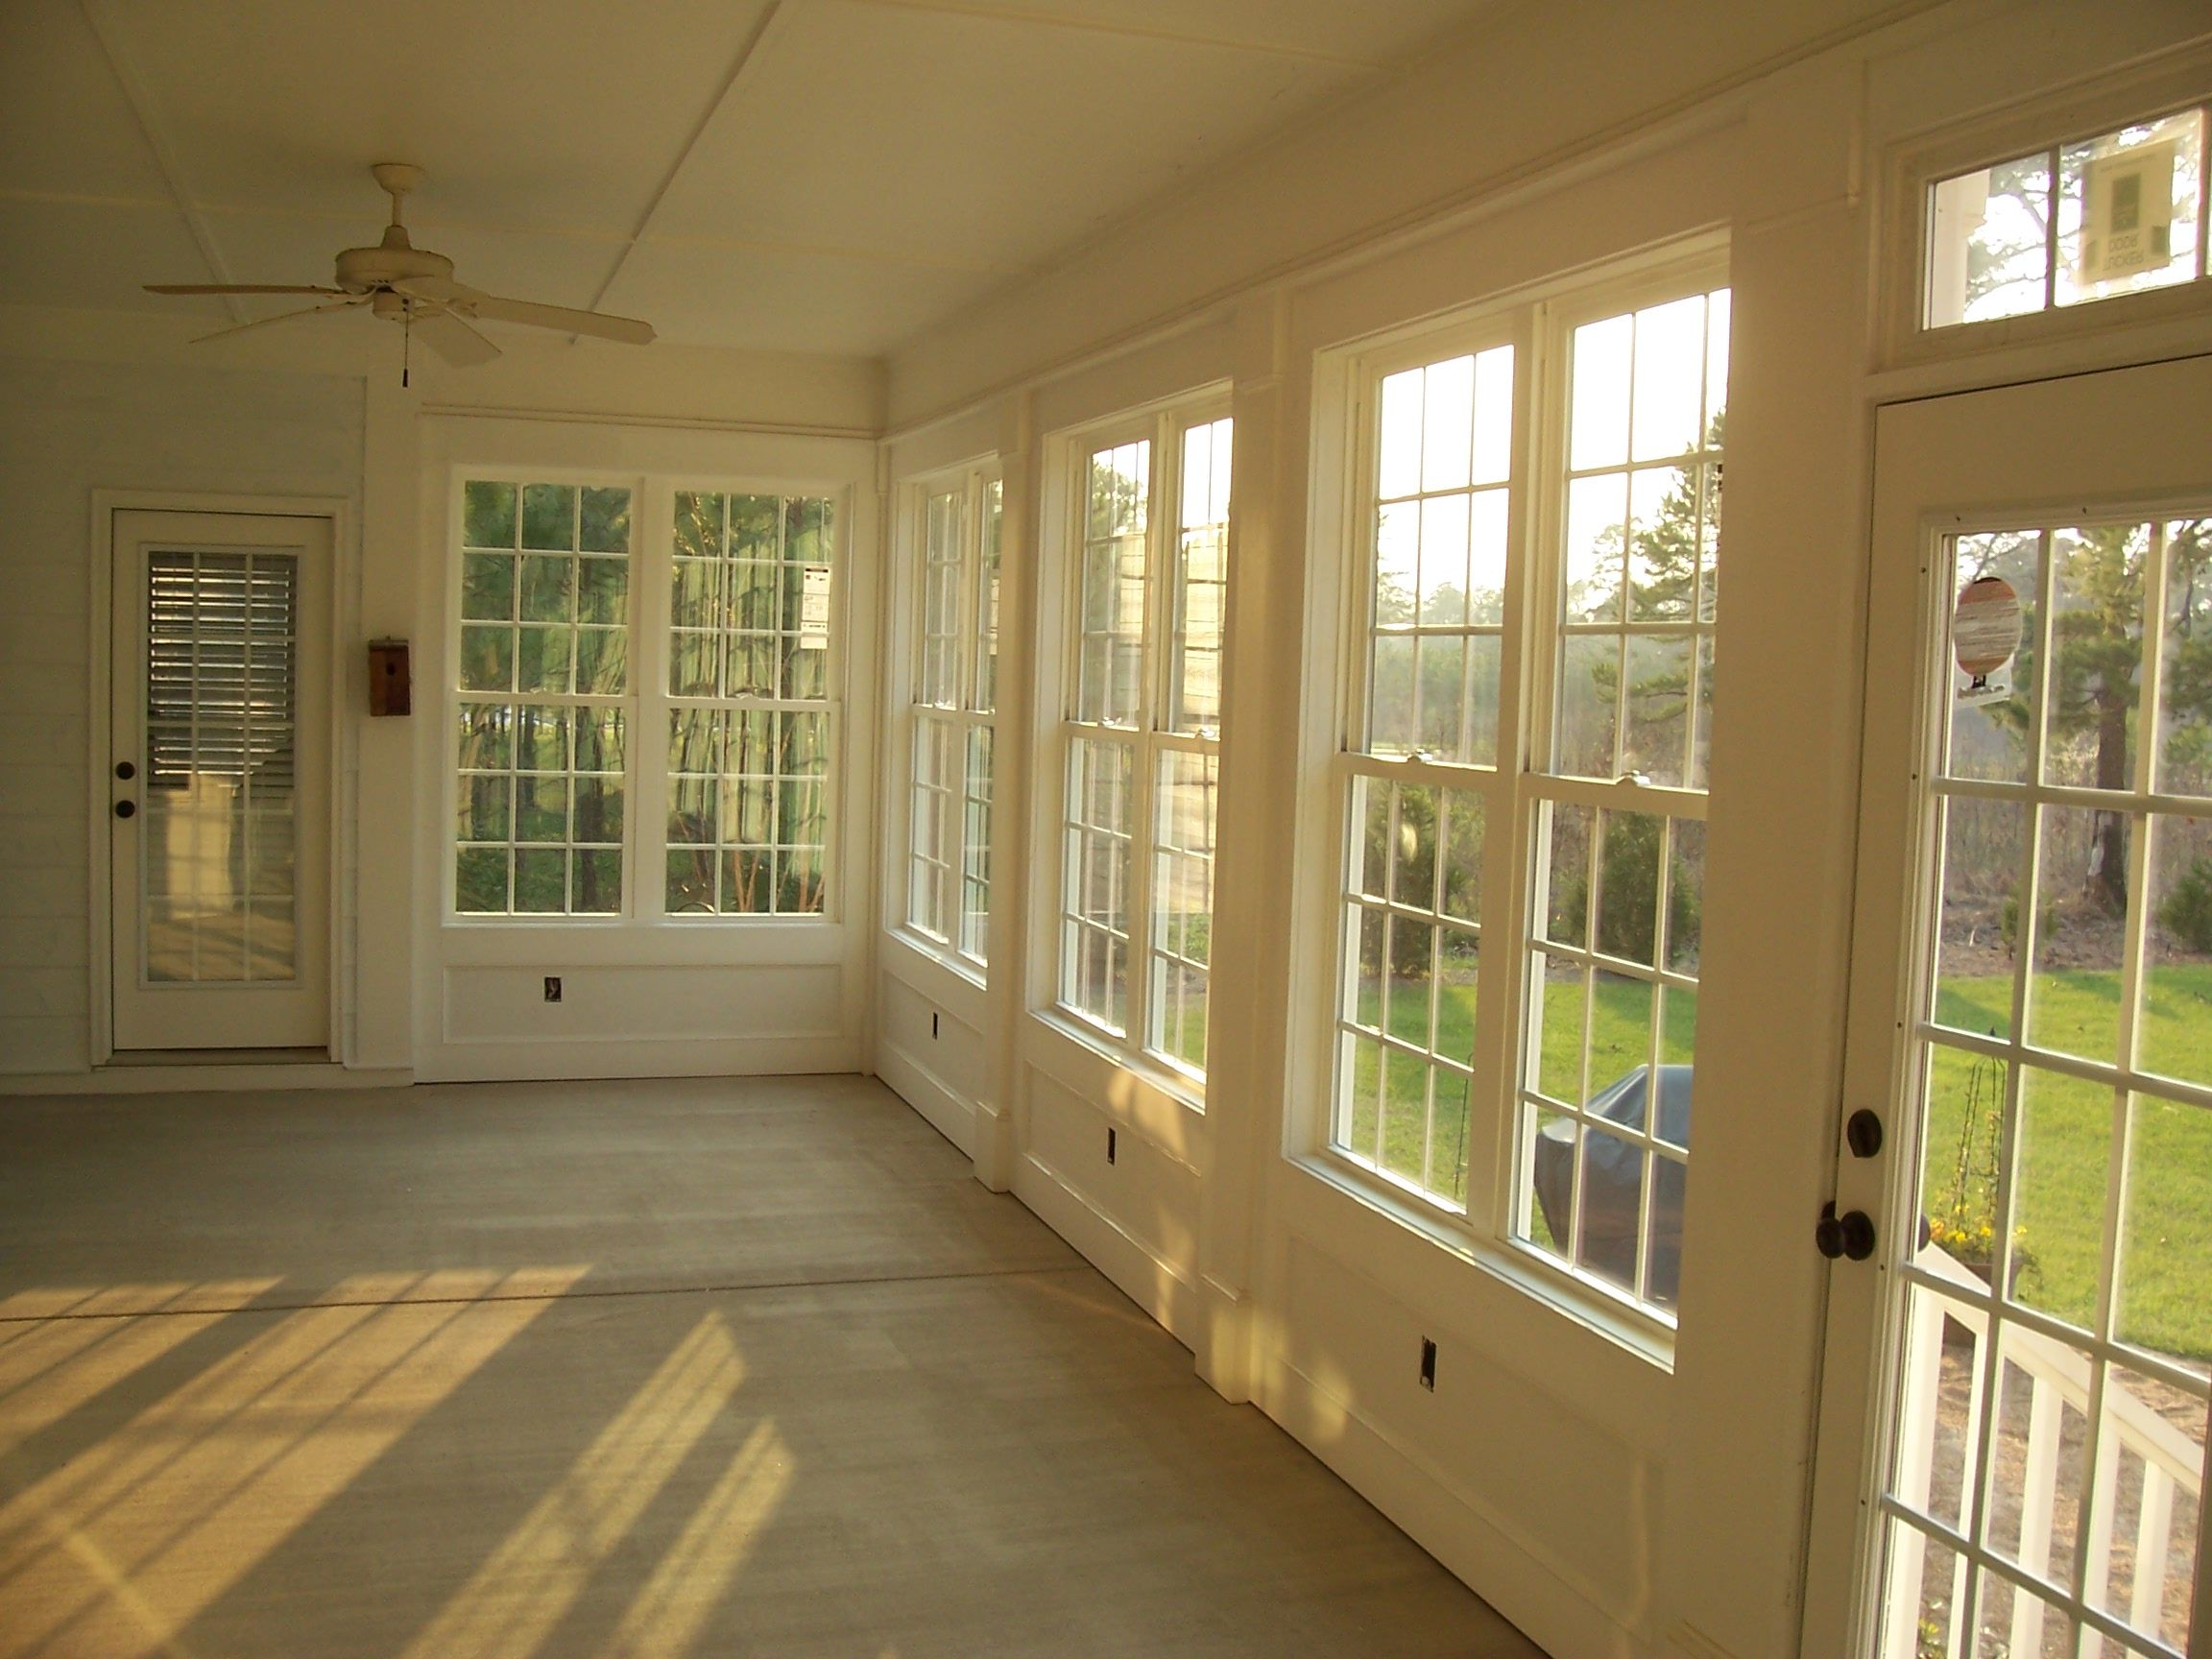 Remodel project Screen Porch turned Sunroom Sun Porch Interior Pic 8 Visit us at stevecoxinc